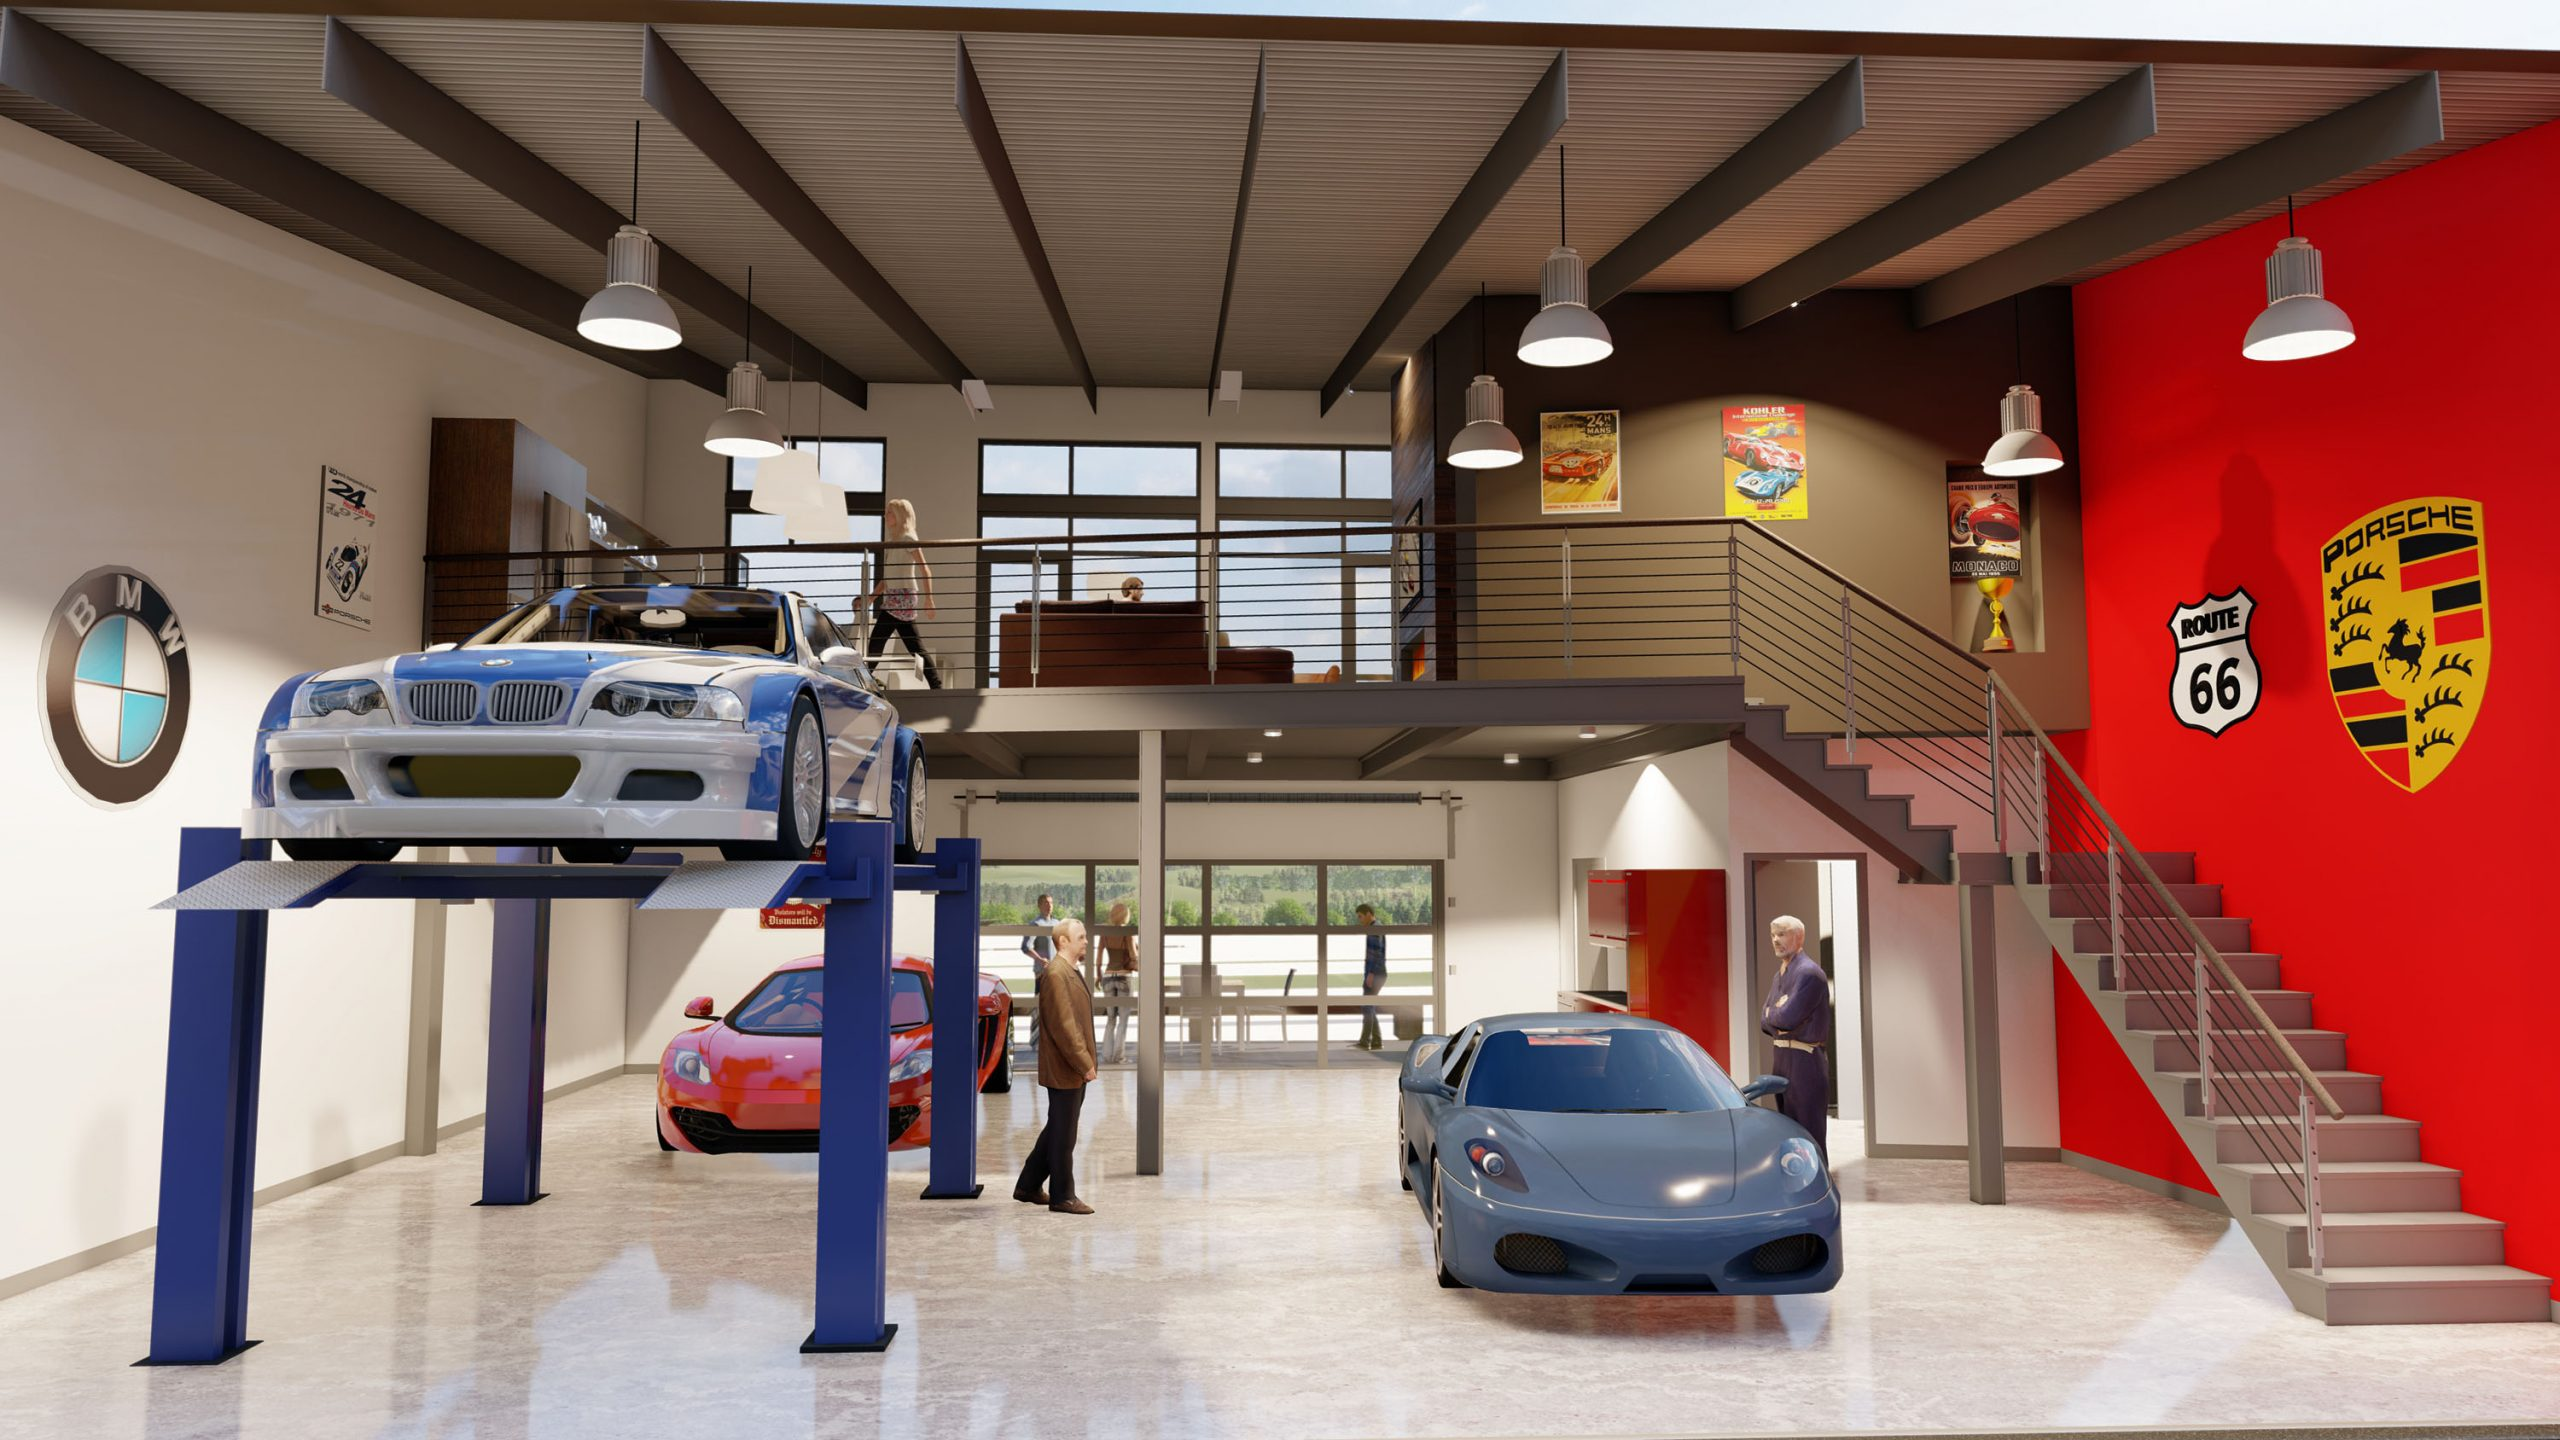 Autominiums condo rendering interior cars and people